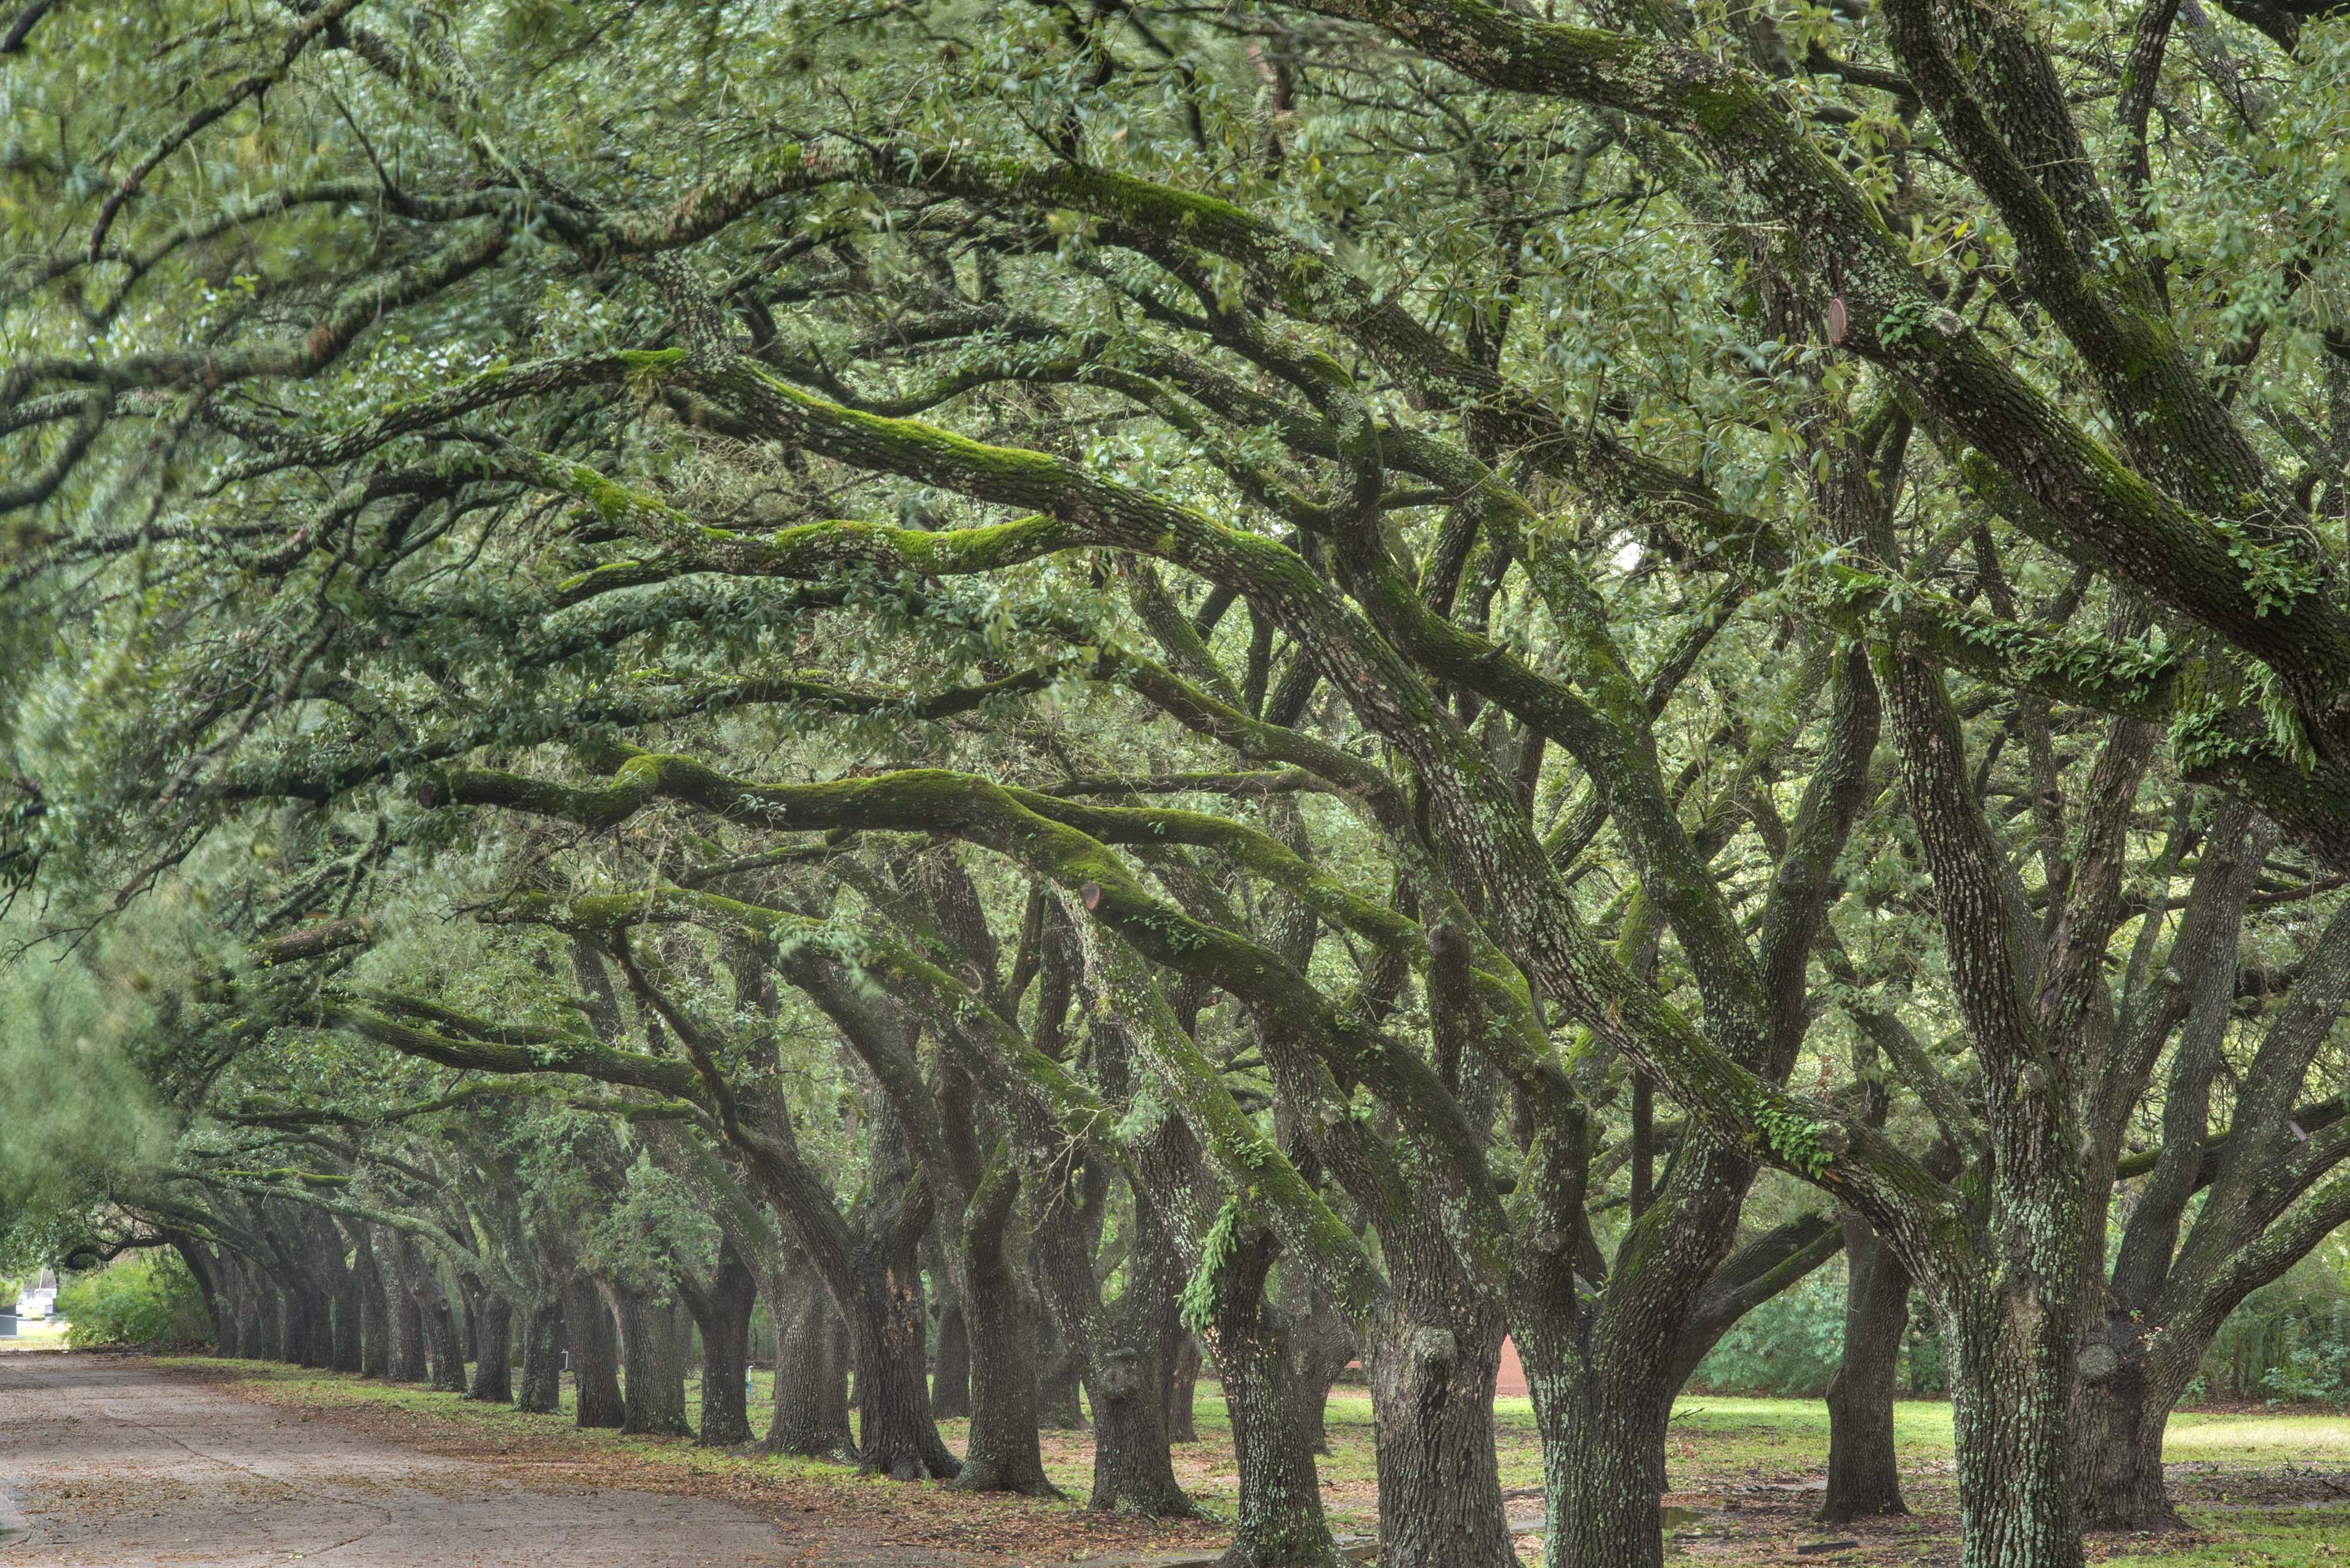 Oak alley at the entrance of City Cemetery. Bryan, Texas